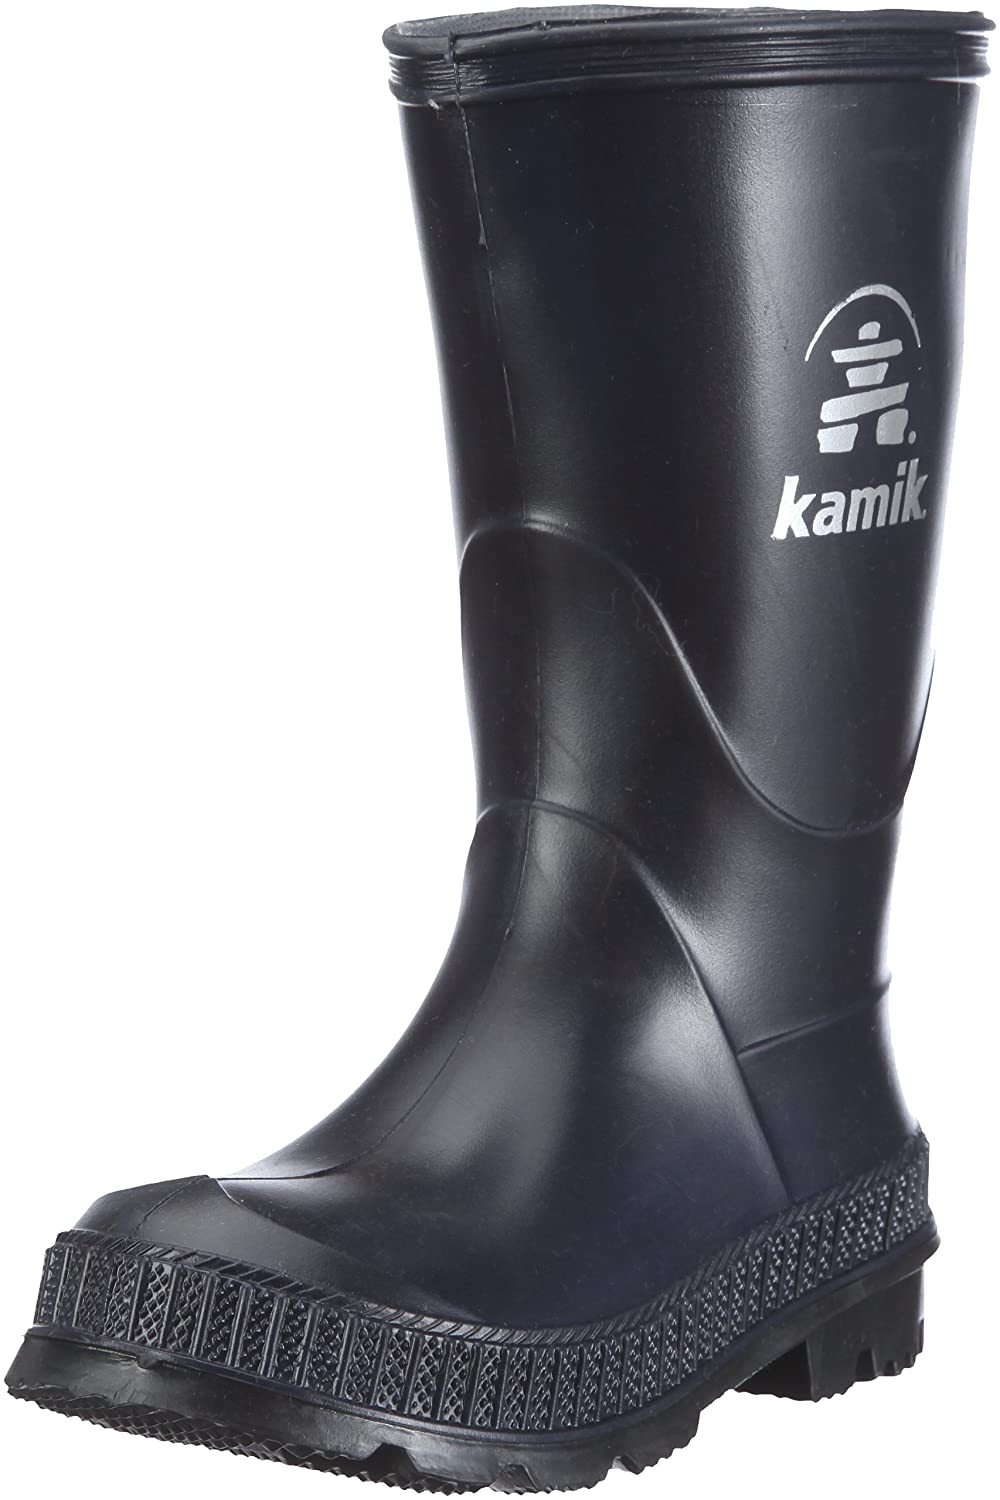 Kamik Stomp Rain Boot (Toddler/Little Kid/Big Kid)